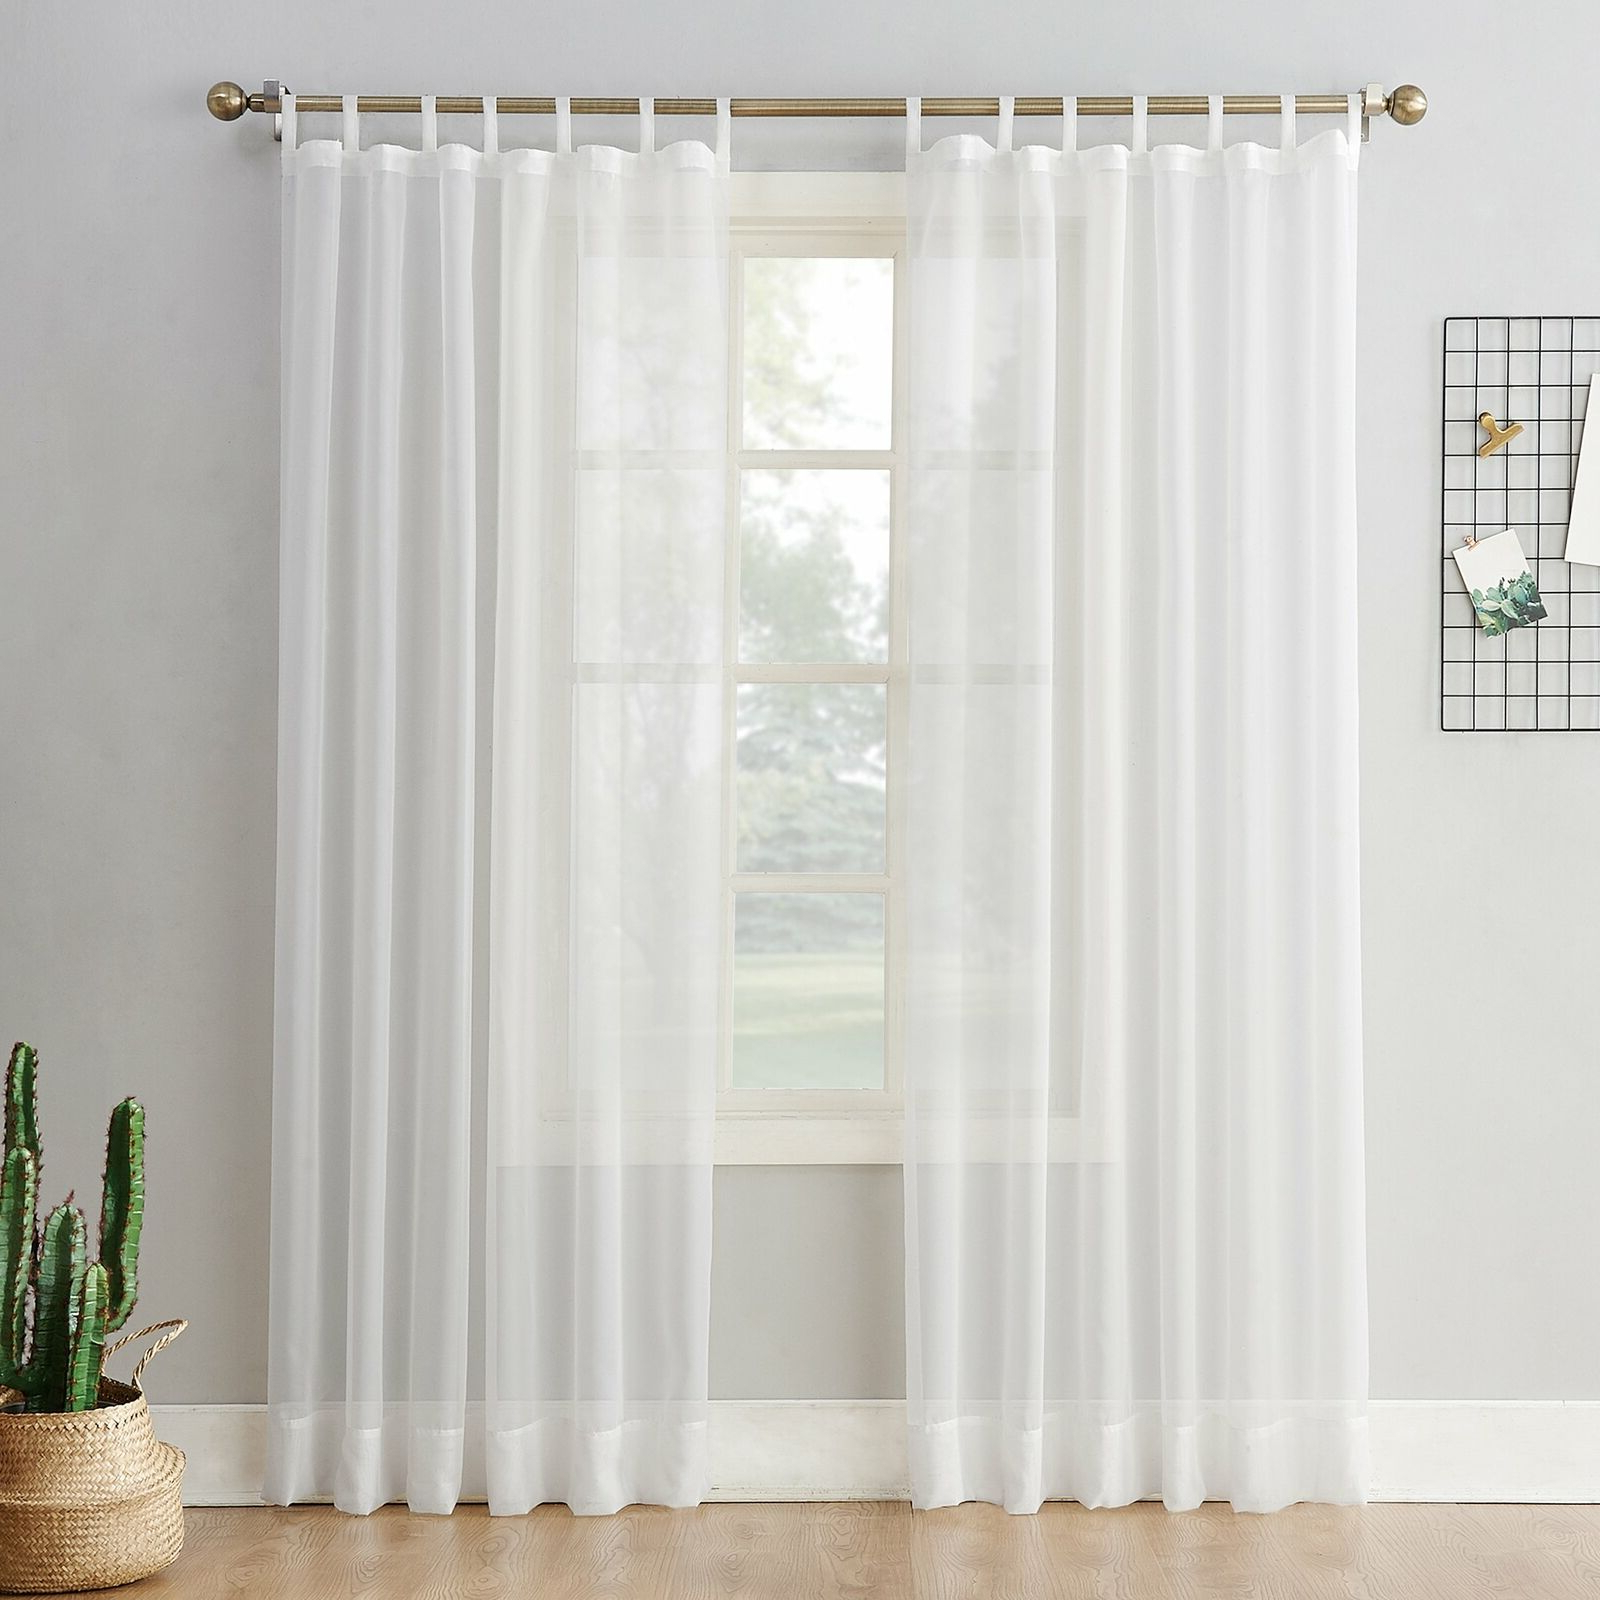 "Emily Sheer Voile Grommet Curtain Panels Regarding 2021 No. 918 Emily Sheer Voile Tab Top Curtain Panel, 59"" X 84"", White (Gallery 11 of 20)"